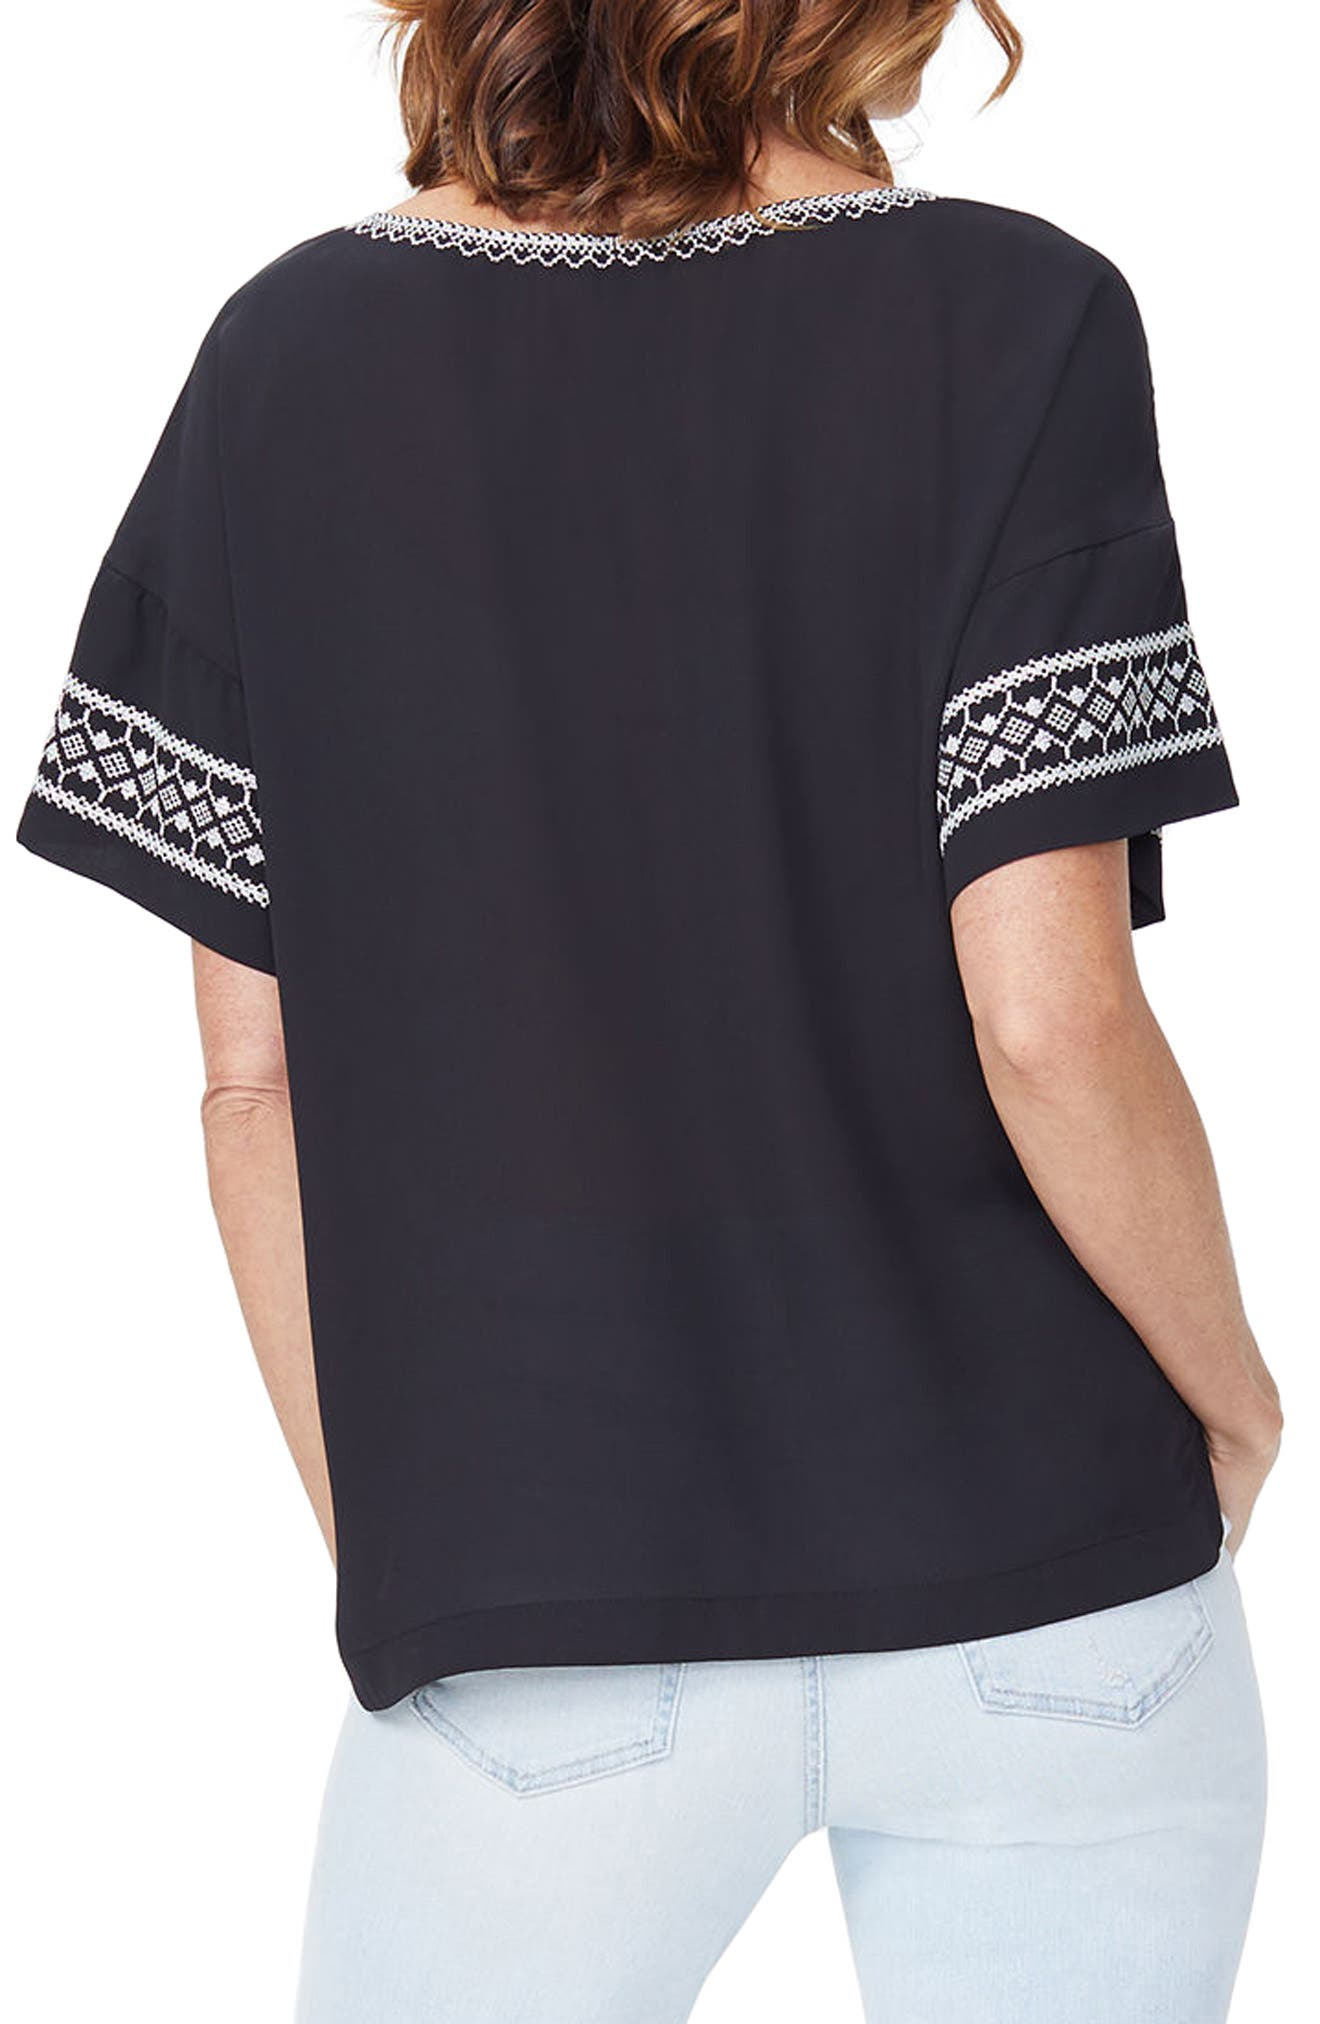 Embroidered Tee,                             Main thumbnail 1, color,                             001